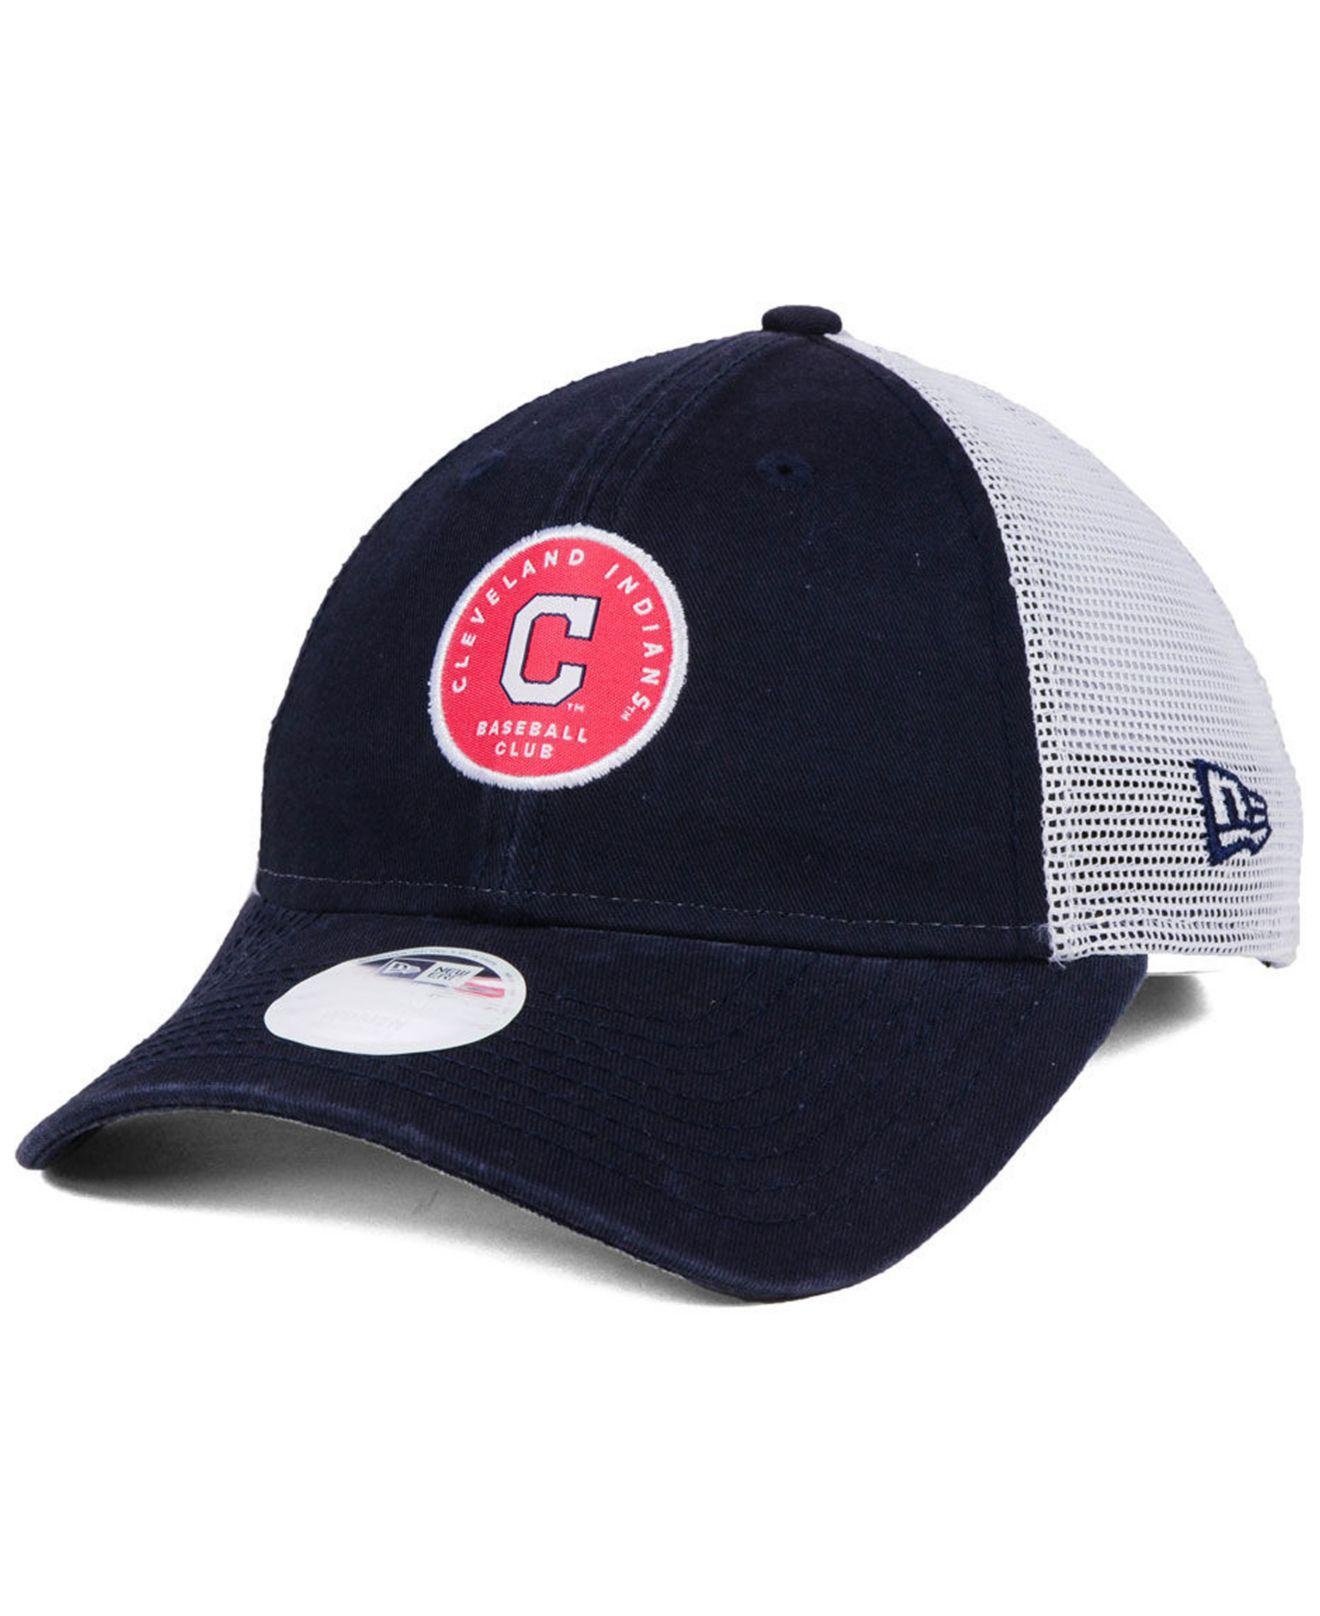 online retailer bb819 eb3fa reduced cleveland indians new era mlb retro classic 59fifty cap 641a4  13d38  best ktz. womens blue cleveland indians washed trucker 9twenty cap  d85c7 37d87